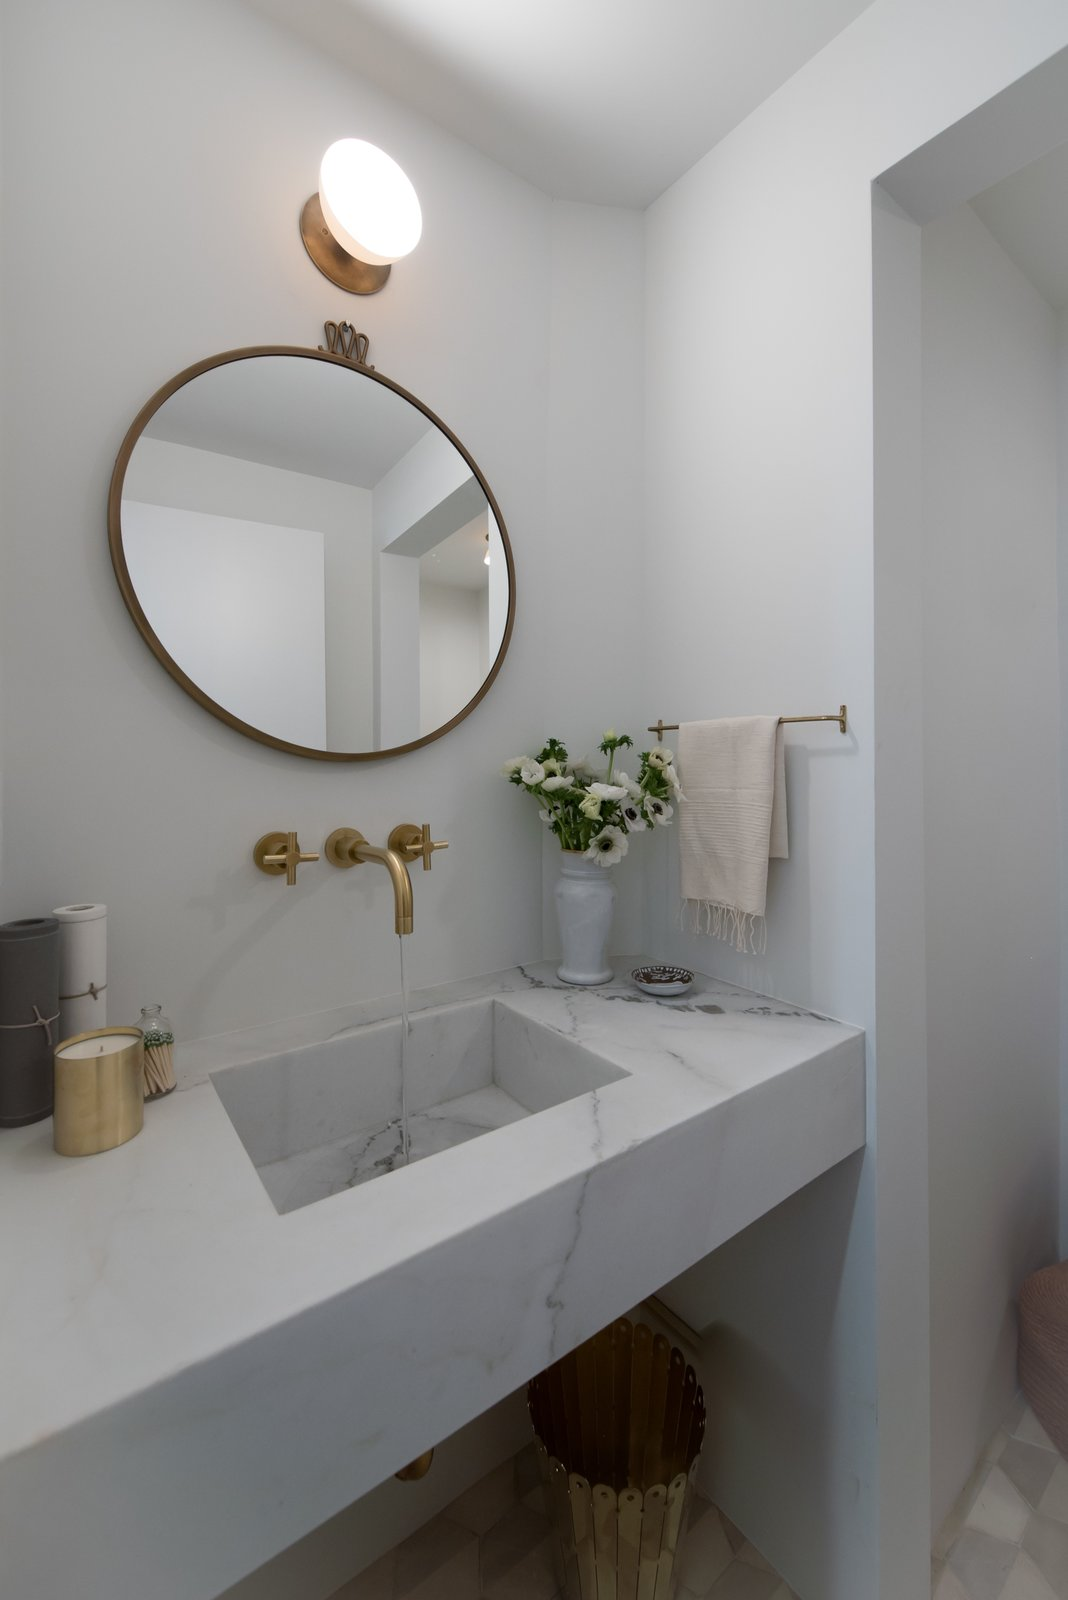 Tagged: Marble Counter, Stone Slab Backsplashe, Stone Counter, White Cabinet, Wood Cabinet, Front Yard, One Piece Toilet, Recessed Lighting, Light Hardwood Floor, Wood Burning Fireplace, Coffee Tables, and Bath Room.  The Oaks on Whitman by Landmark Building Inc.